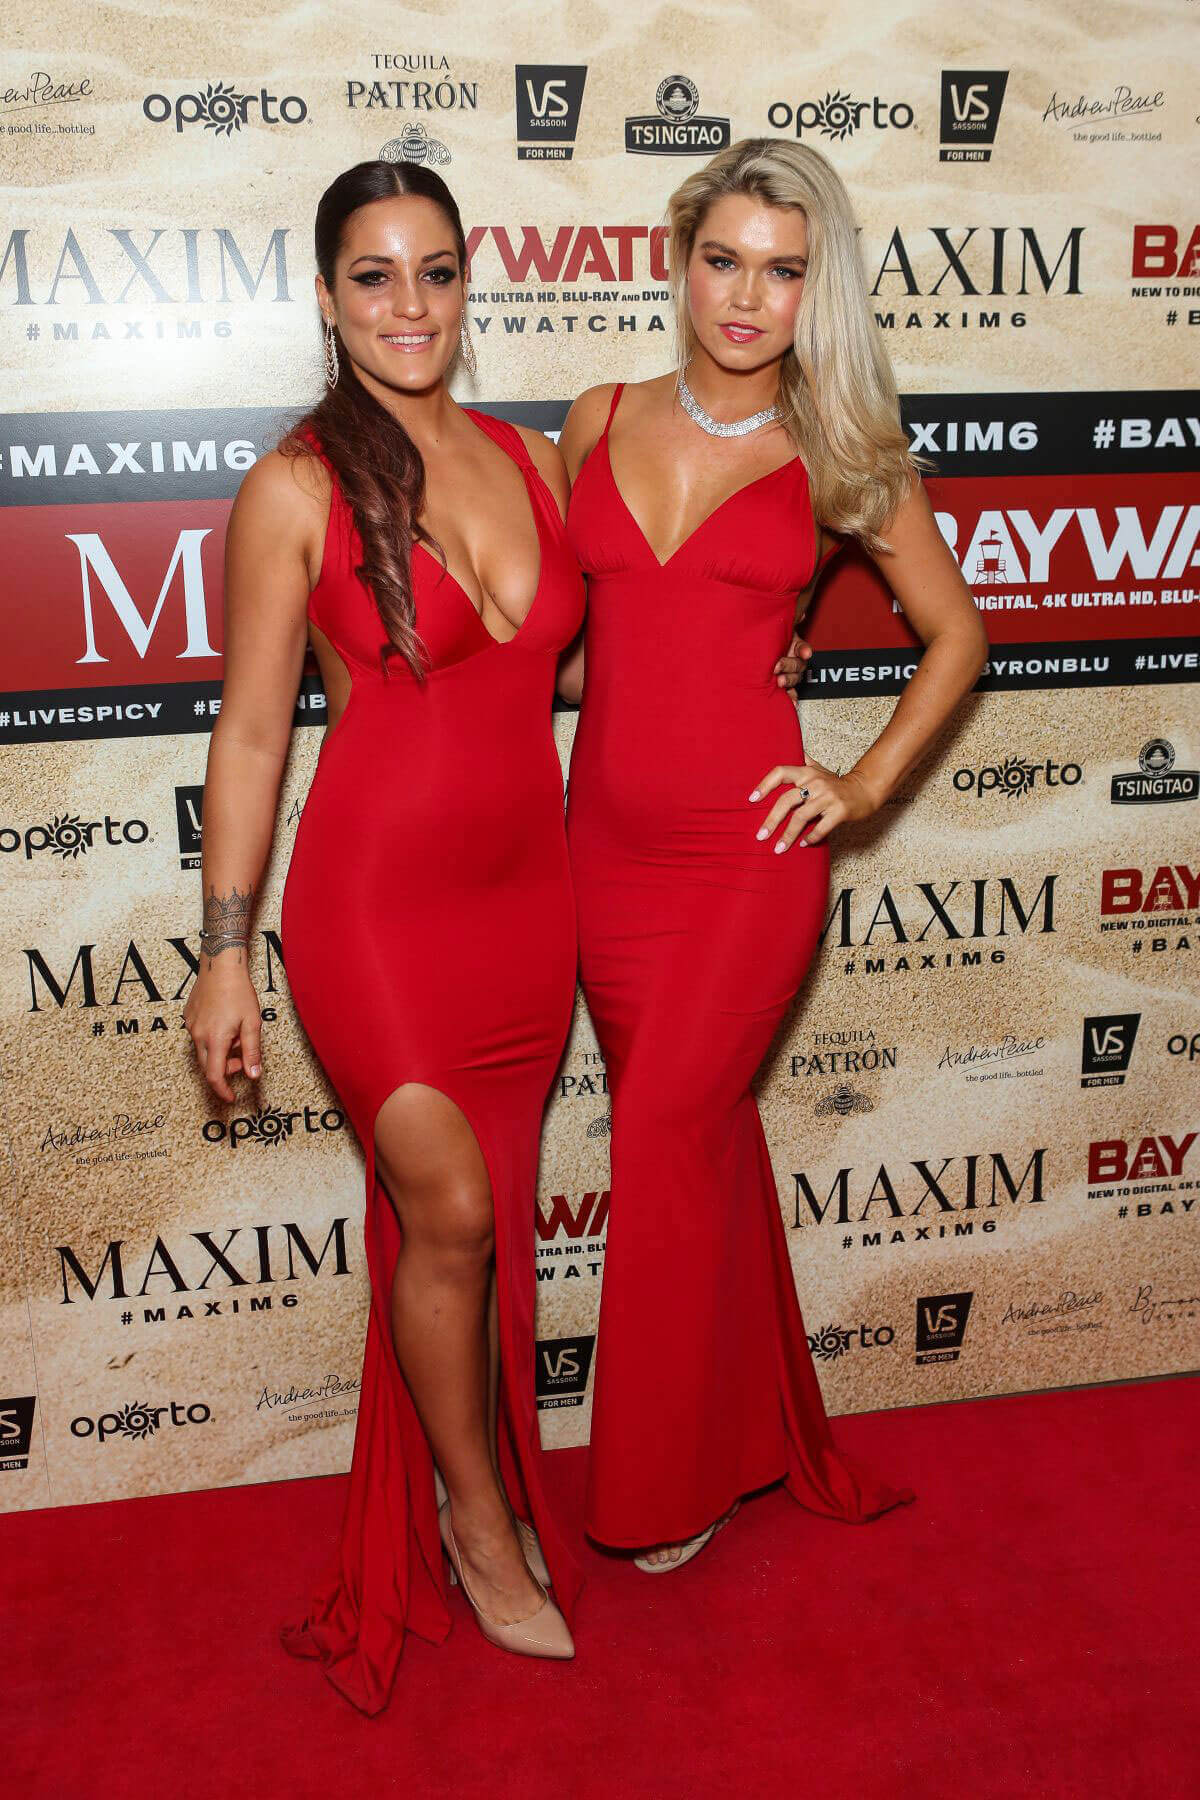 Elora Murger and Simone Ormesher Stills at Maxim Magazine's Baywatch Themed in Sydney